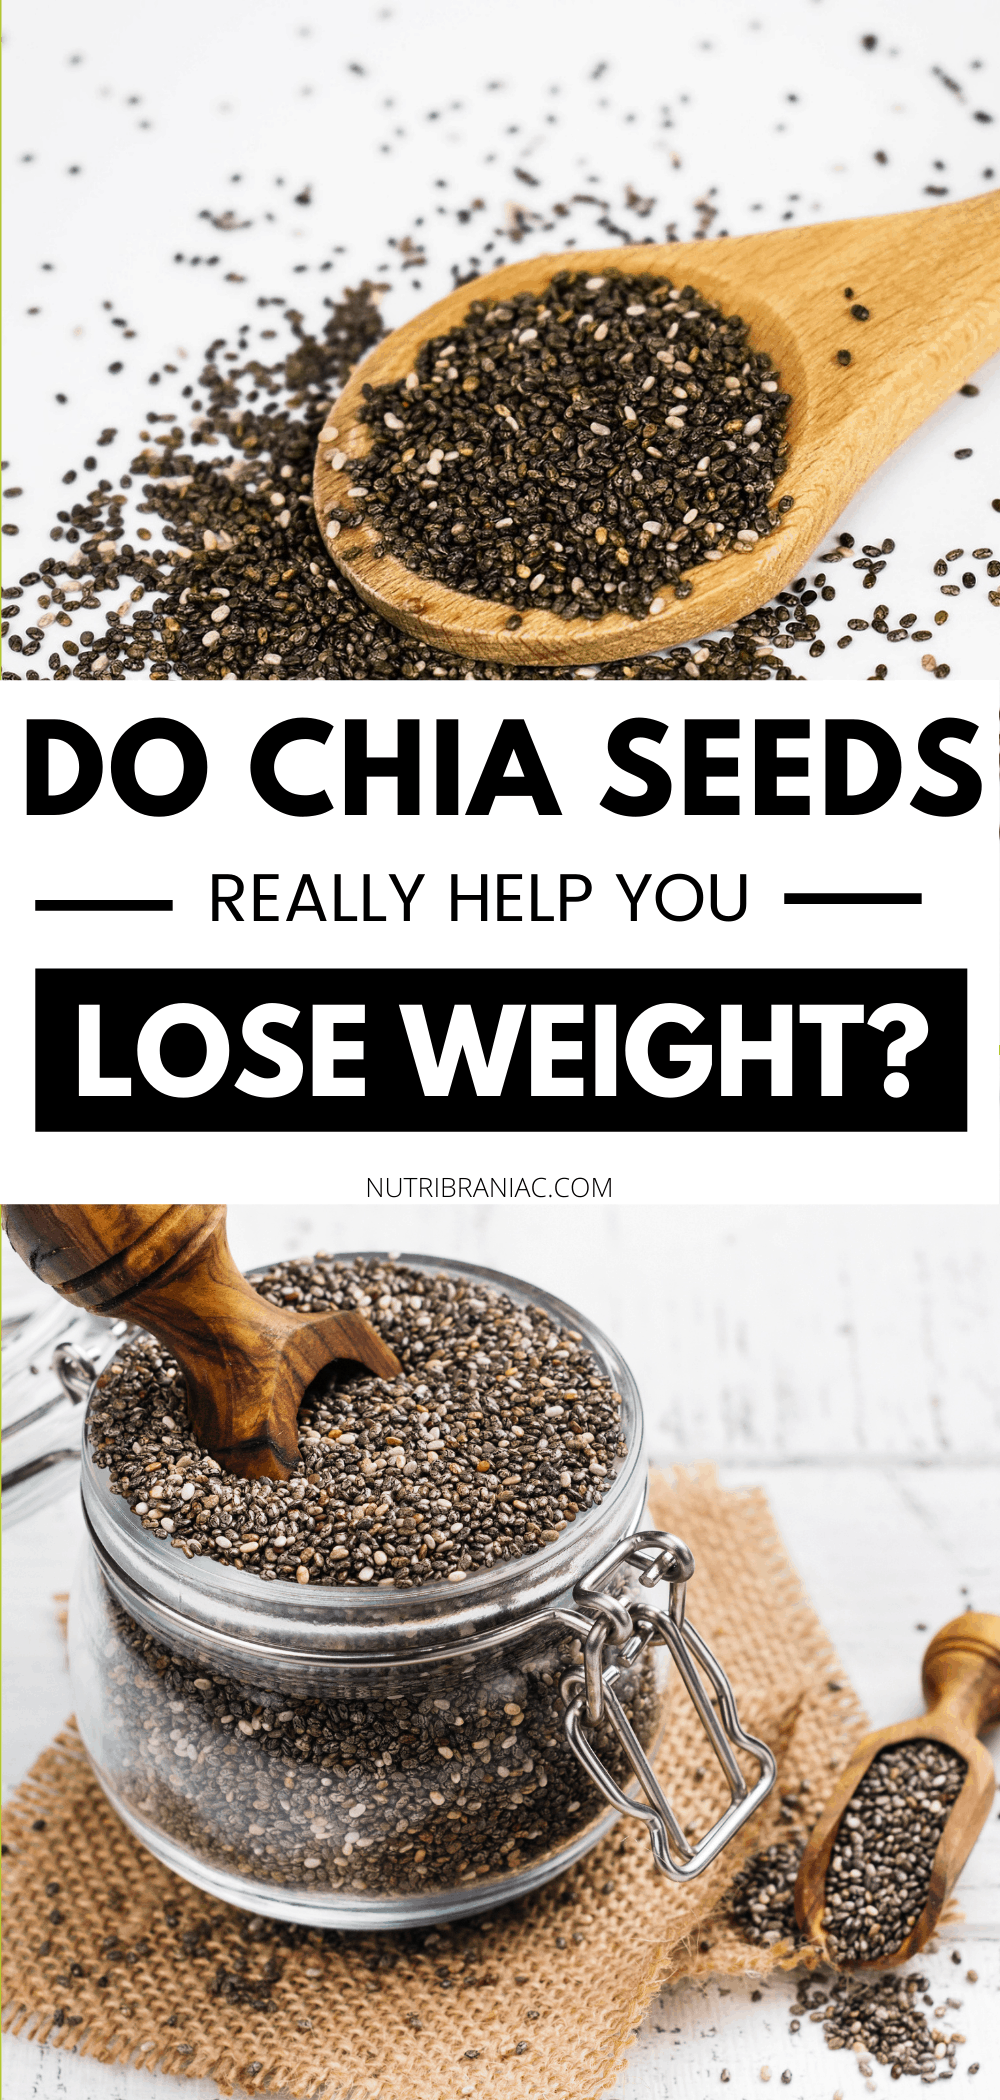 Graphics pinnable image of a glass jar of chia seeds with text overlay: Chia Seeds Benefits: Do Chia Seeds Make You Lose Weight?